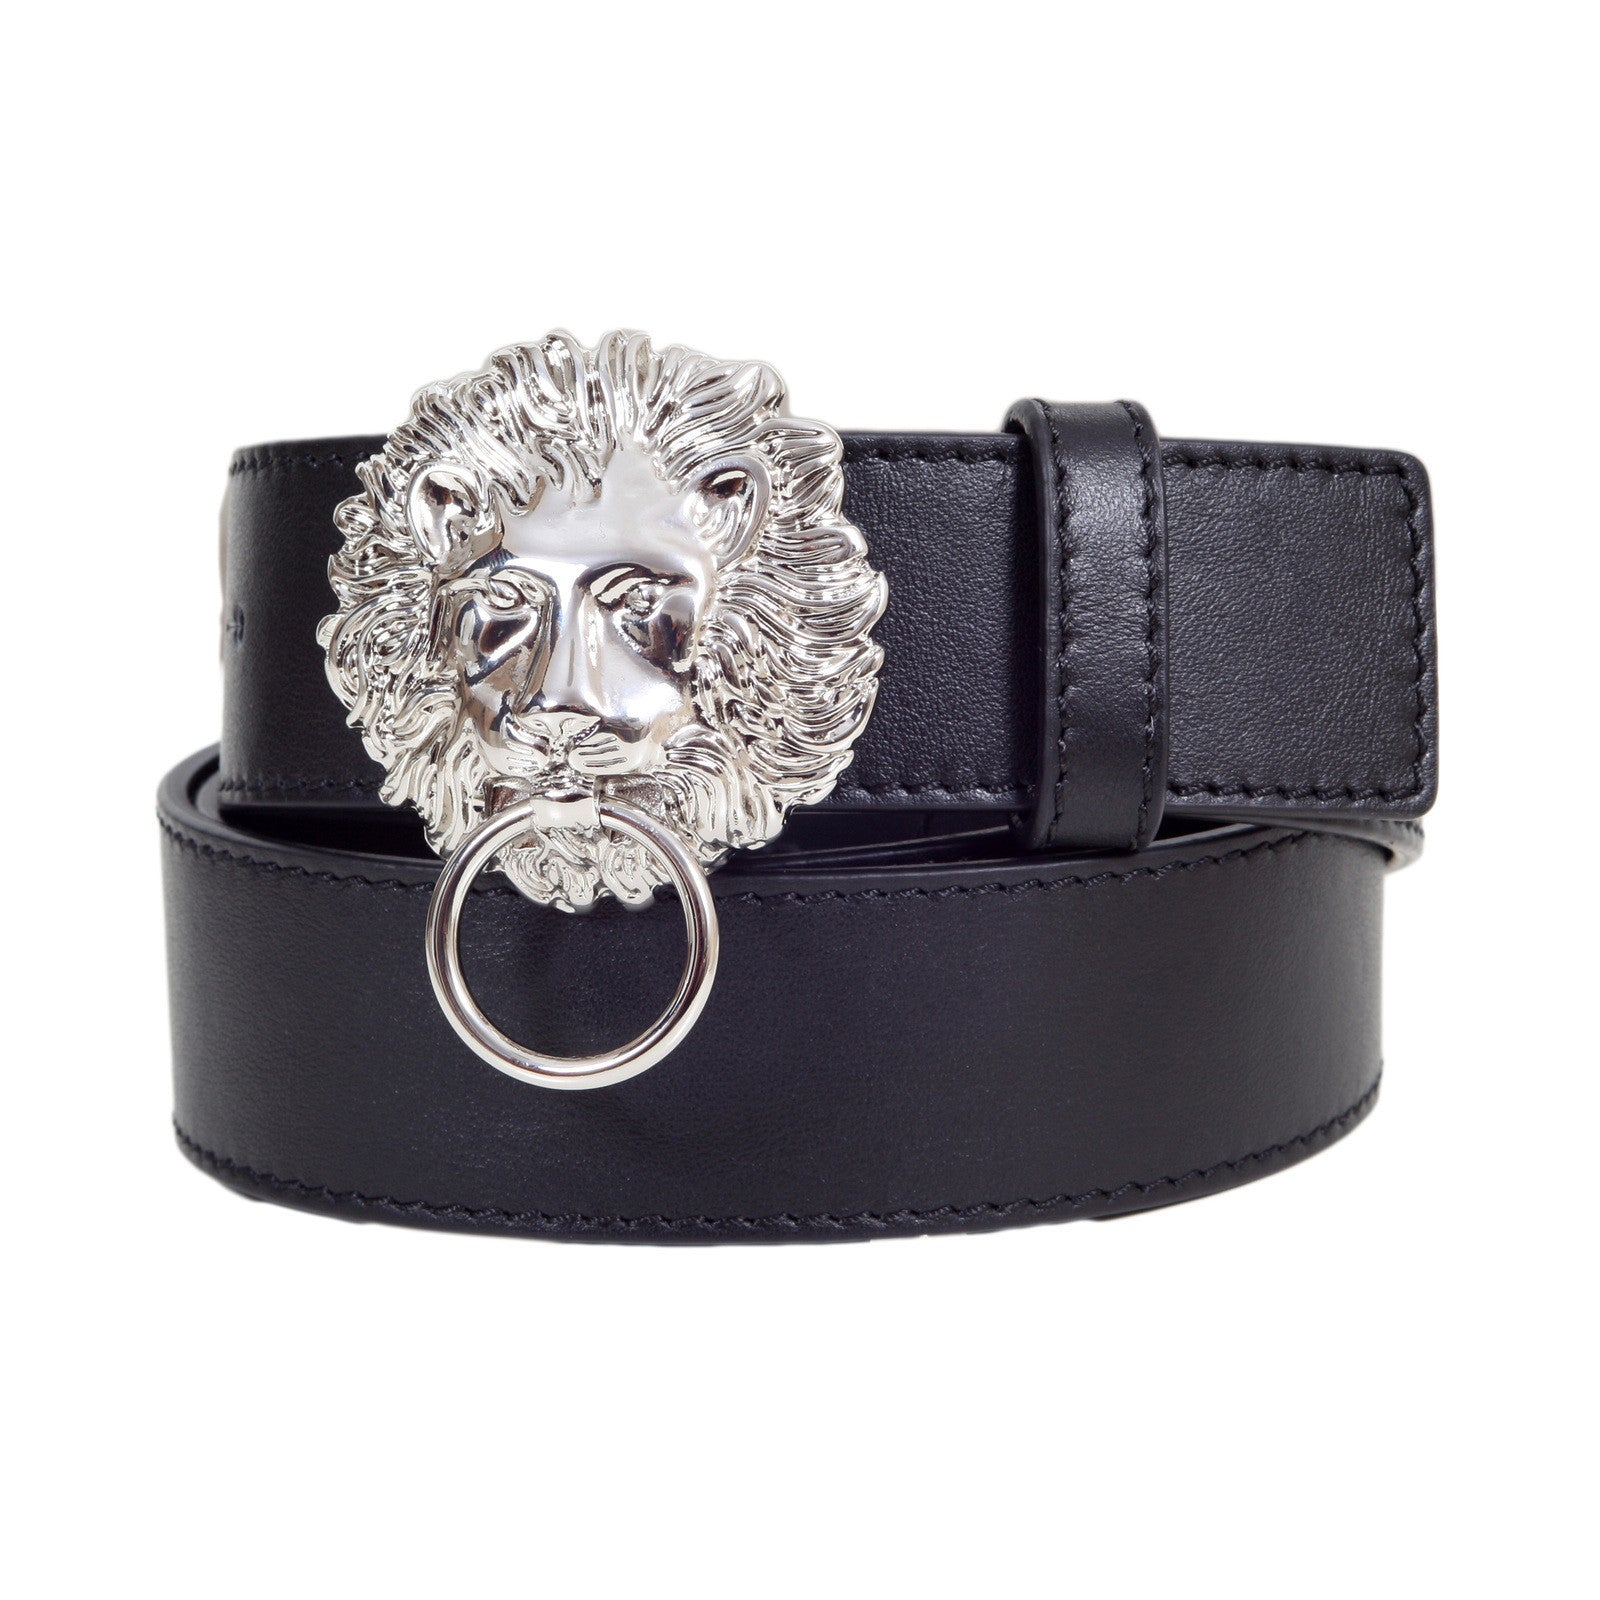 Black leather belt with silver buckle Versace KH6Jg2w2Yh